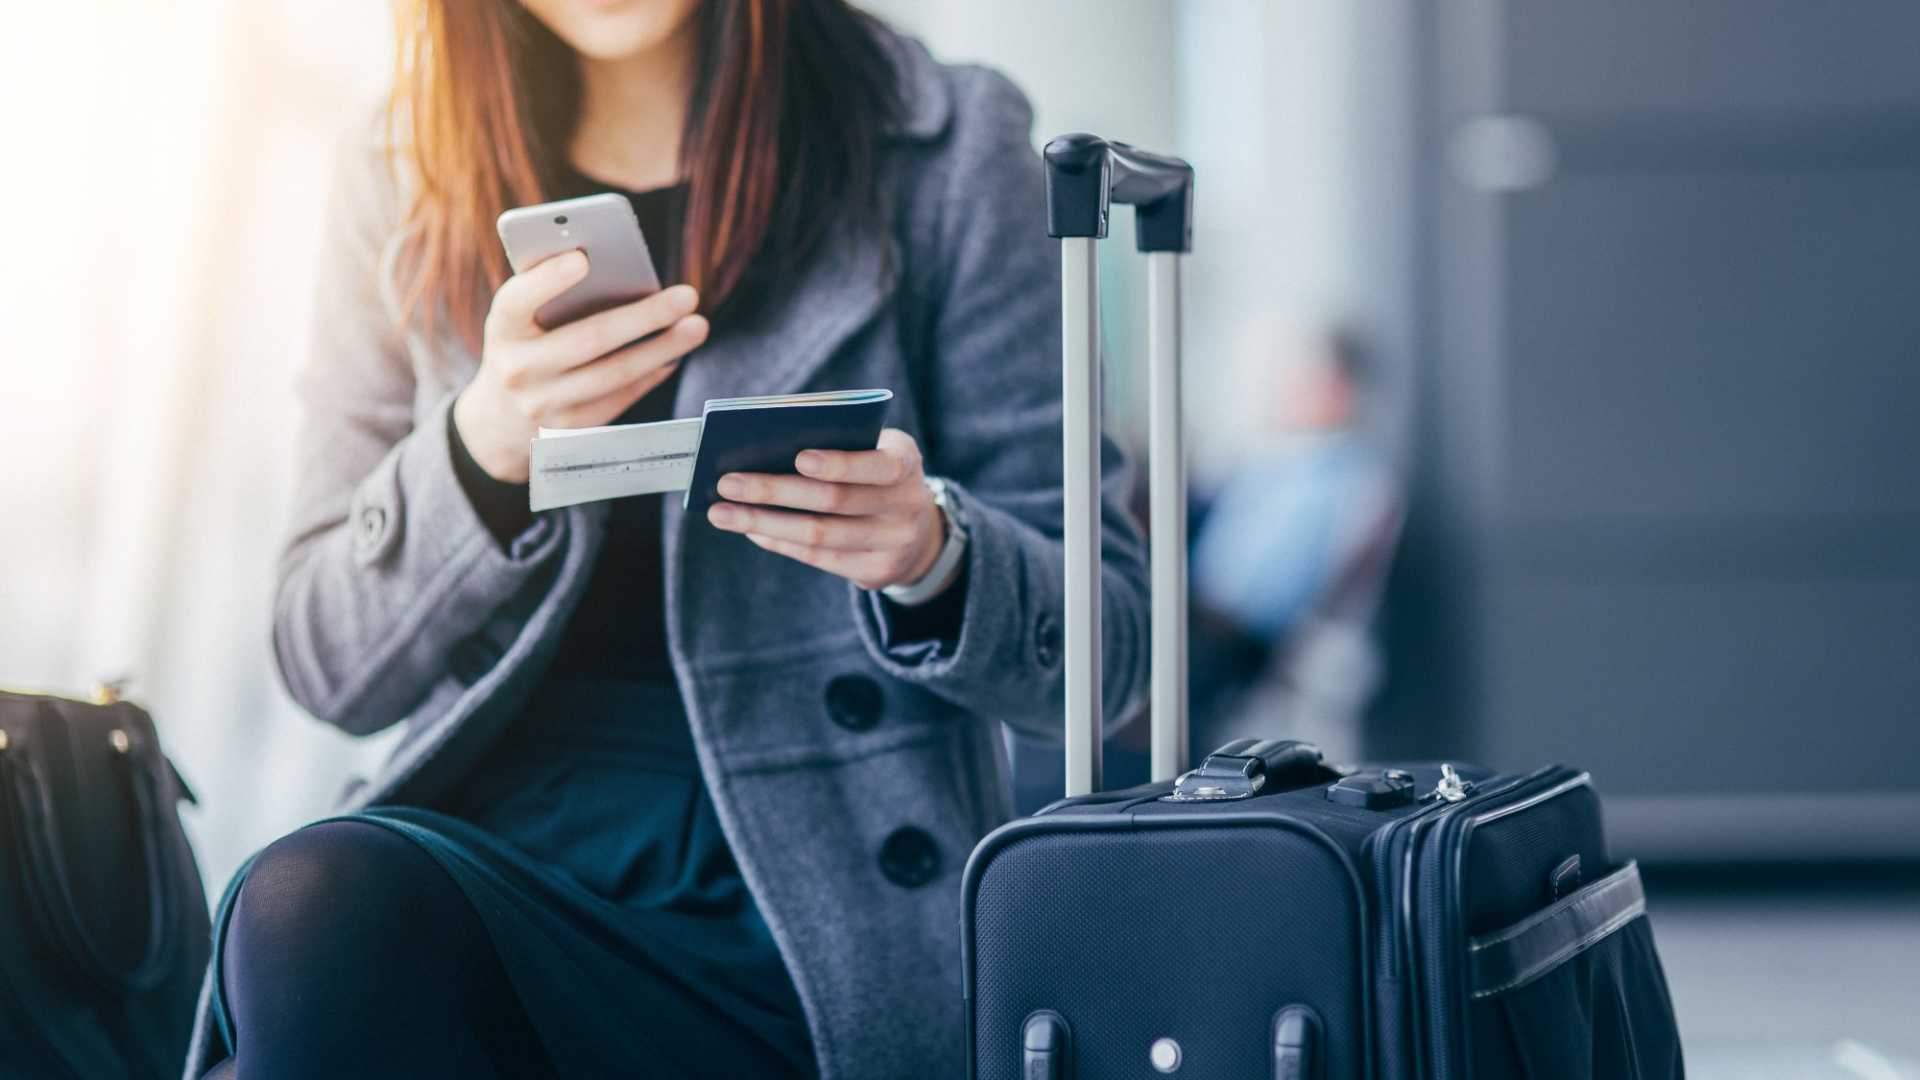 While Some Airlines Make Life More Difficult, Here Are Ways to Make Travel Easier